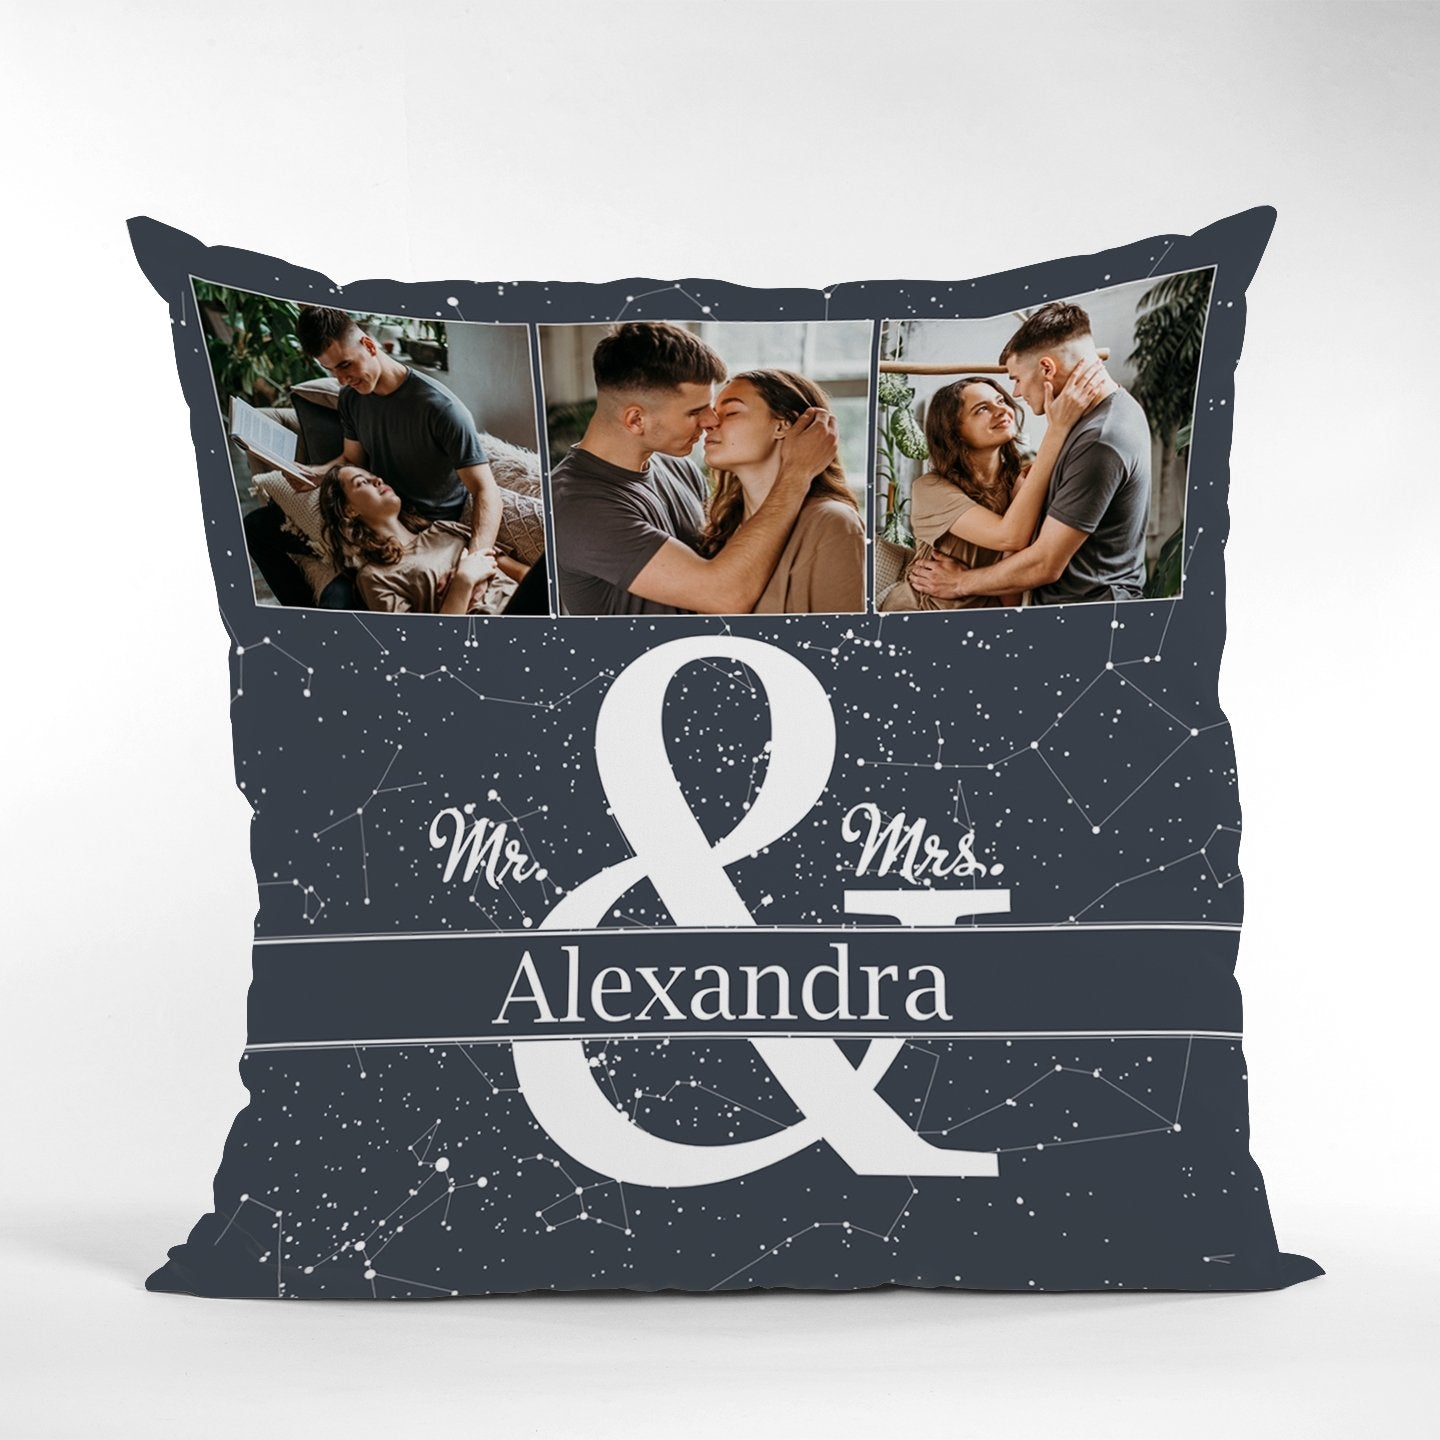 Combined with a constellation chart at night, a photo collage and your last name, the star map pillow is absolutely a thoughtful anniversary gift idea for your astronomy lover. This pillow style contributes to beautifying your comfort zone, making it more magical and memorable.